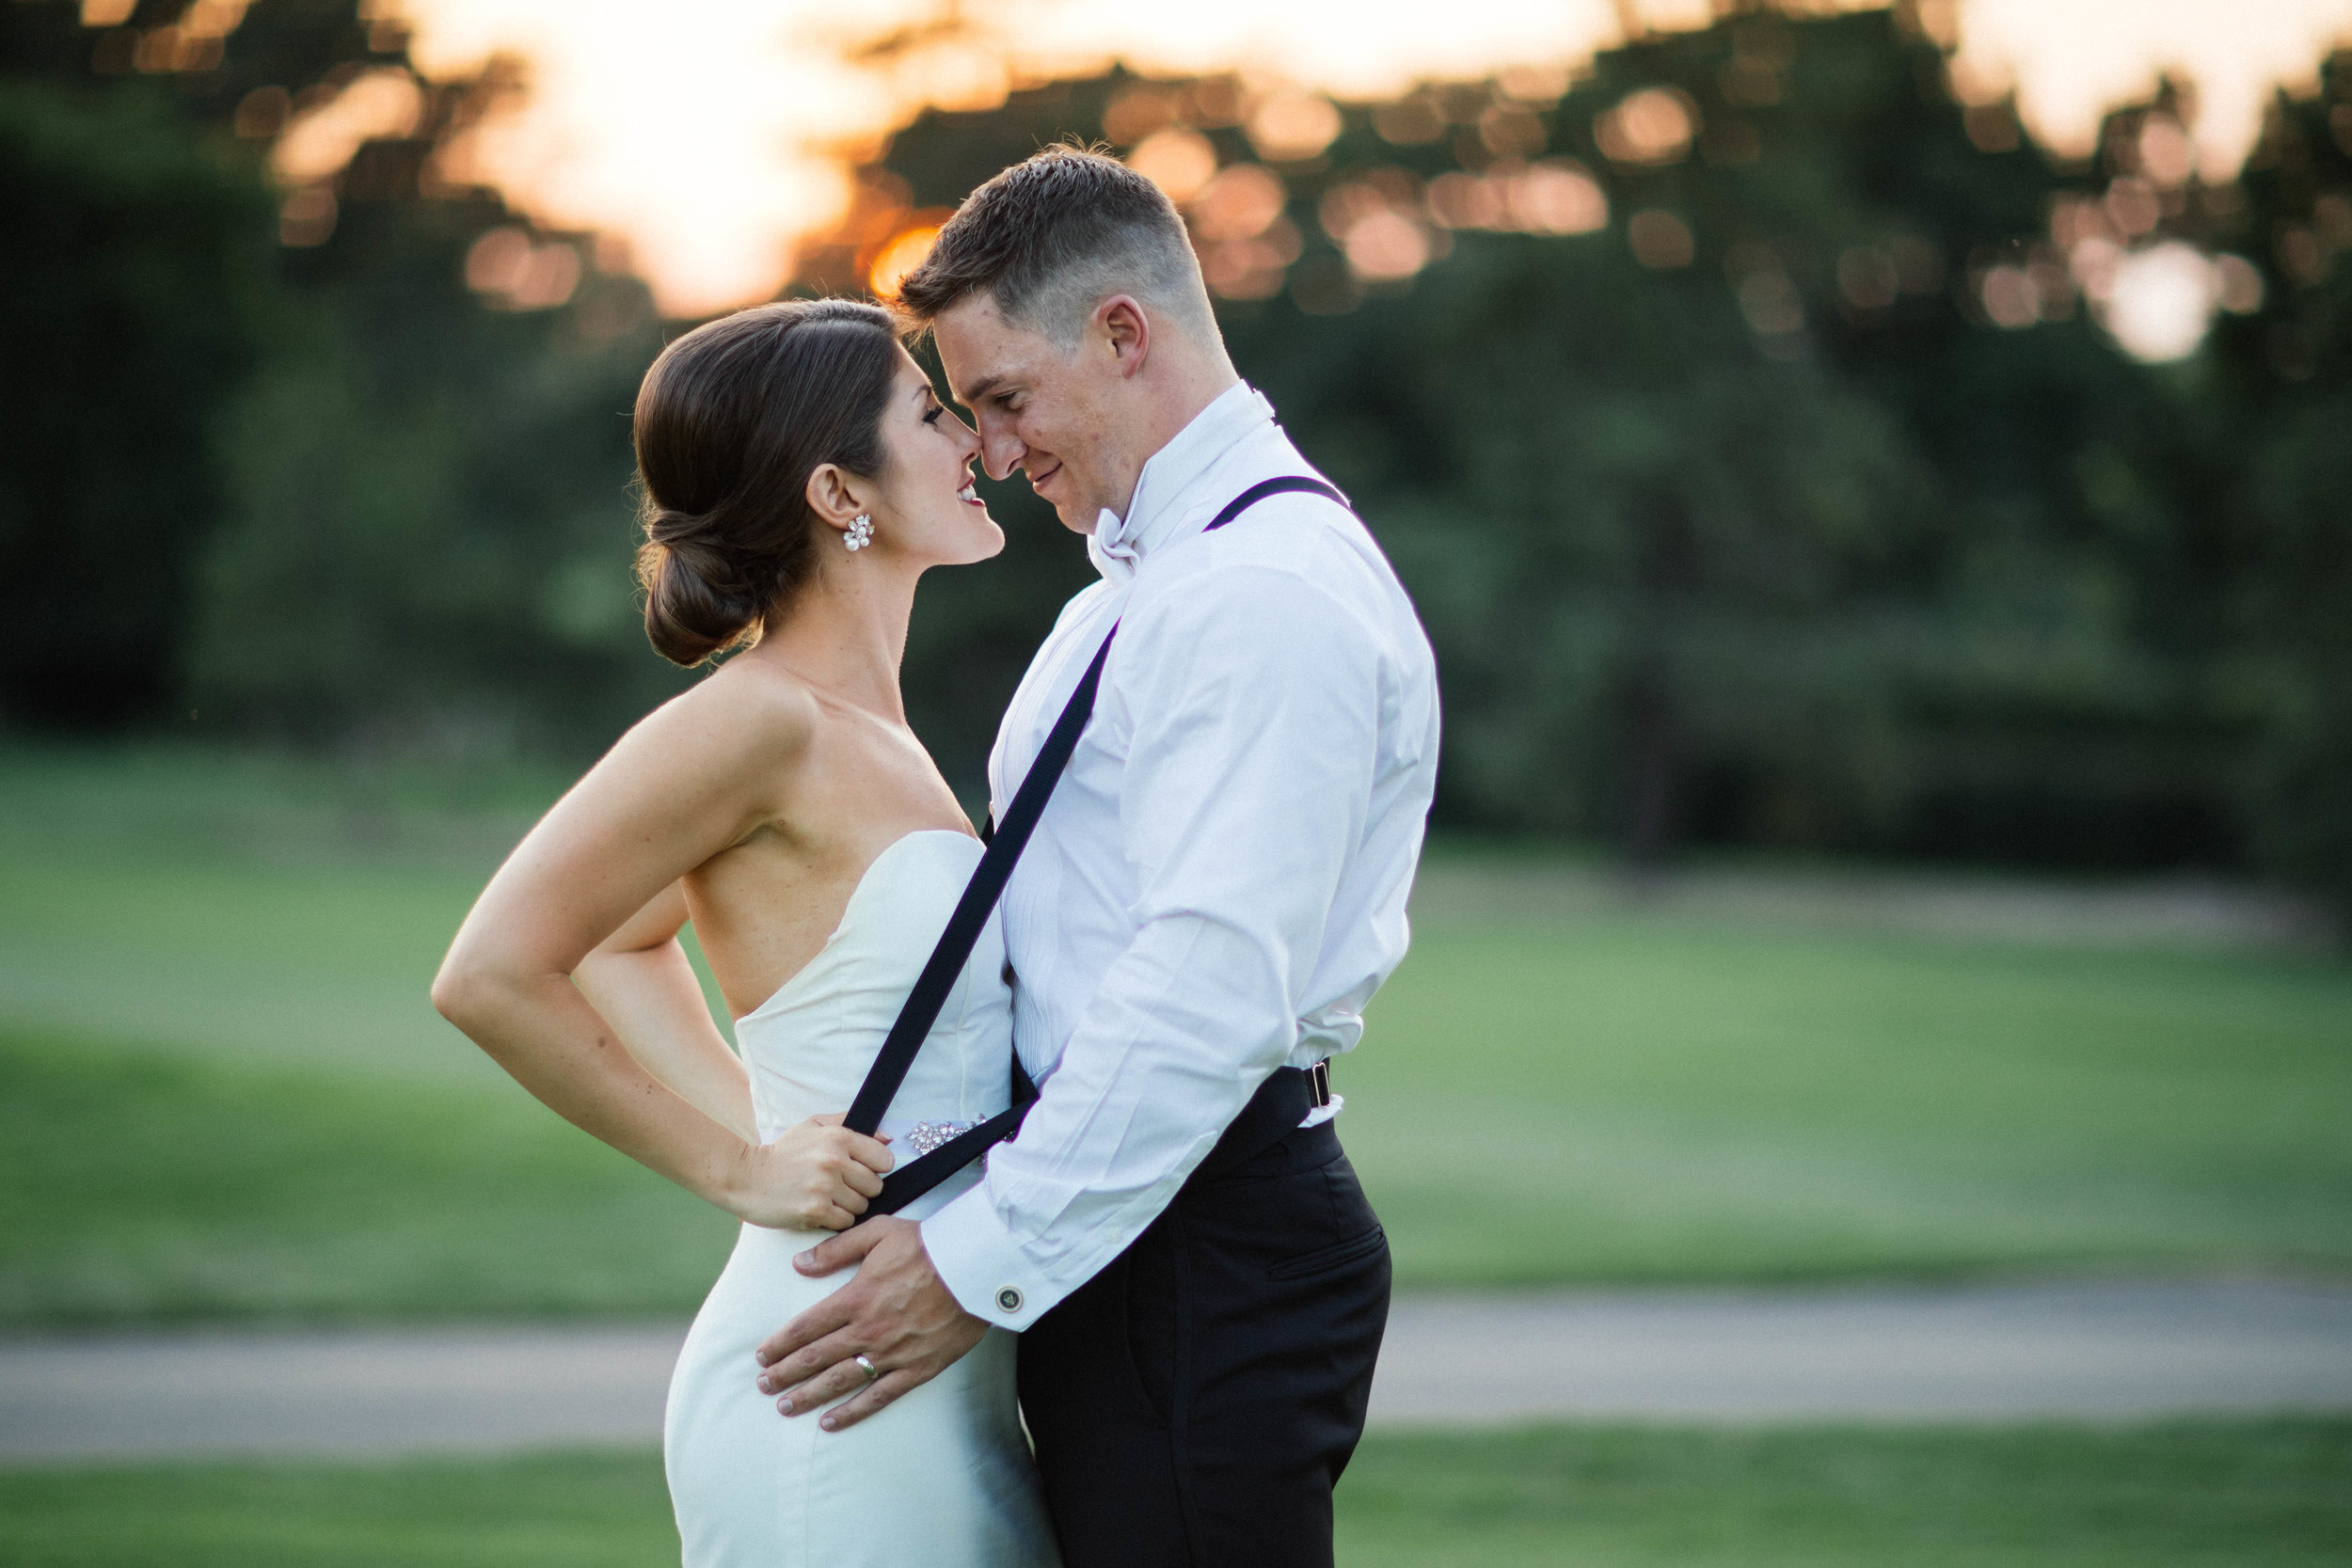 MinneapolisWeddingPhotographer (73 of 76).jpg